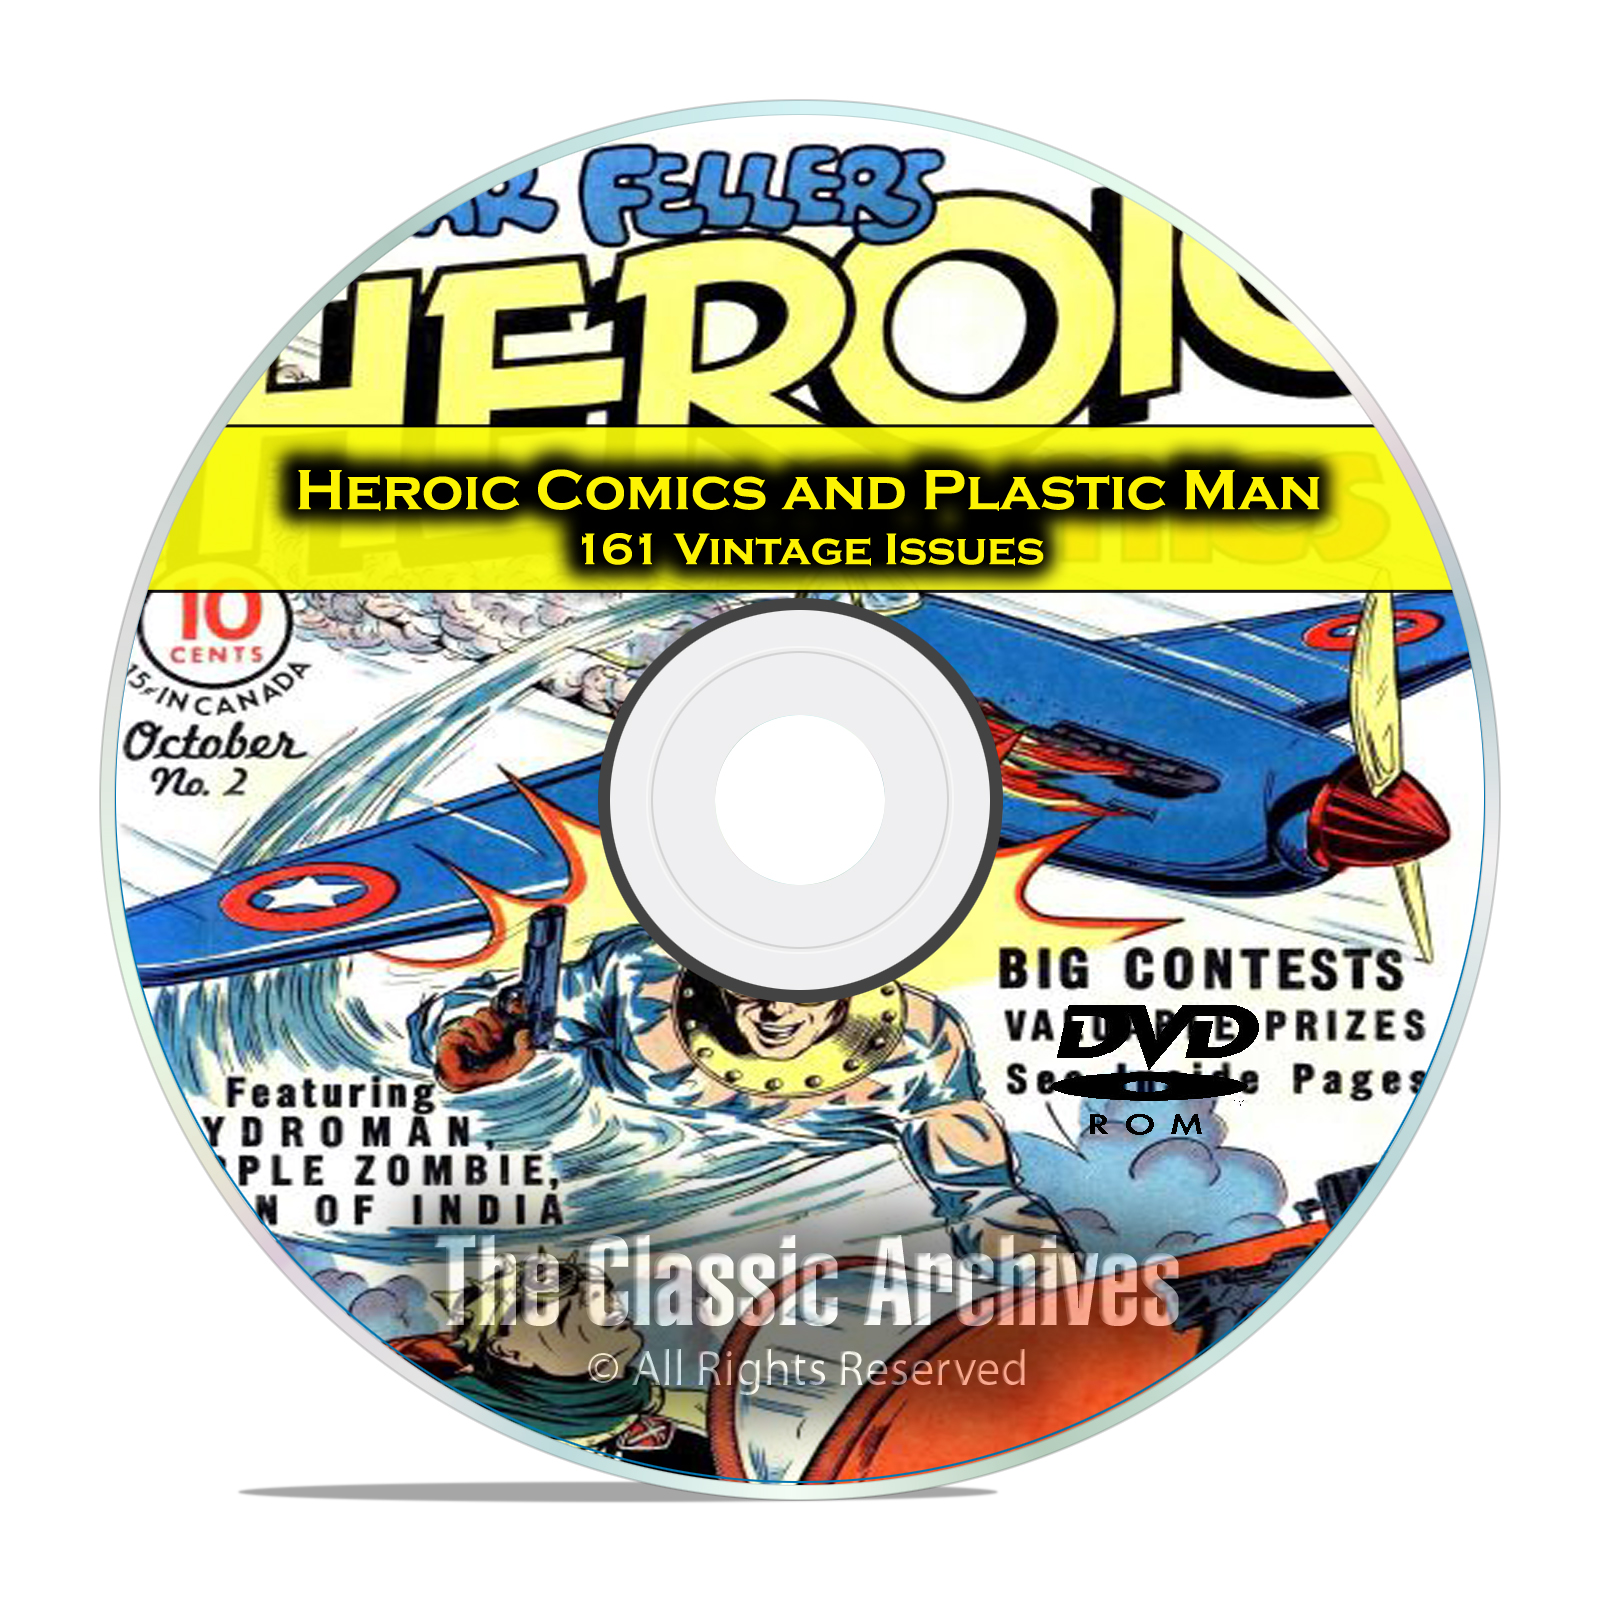 Heroic Comics and Plastic Man 161 Vintage Issues, Golden Age Comics PDF DVD